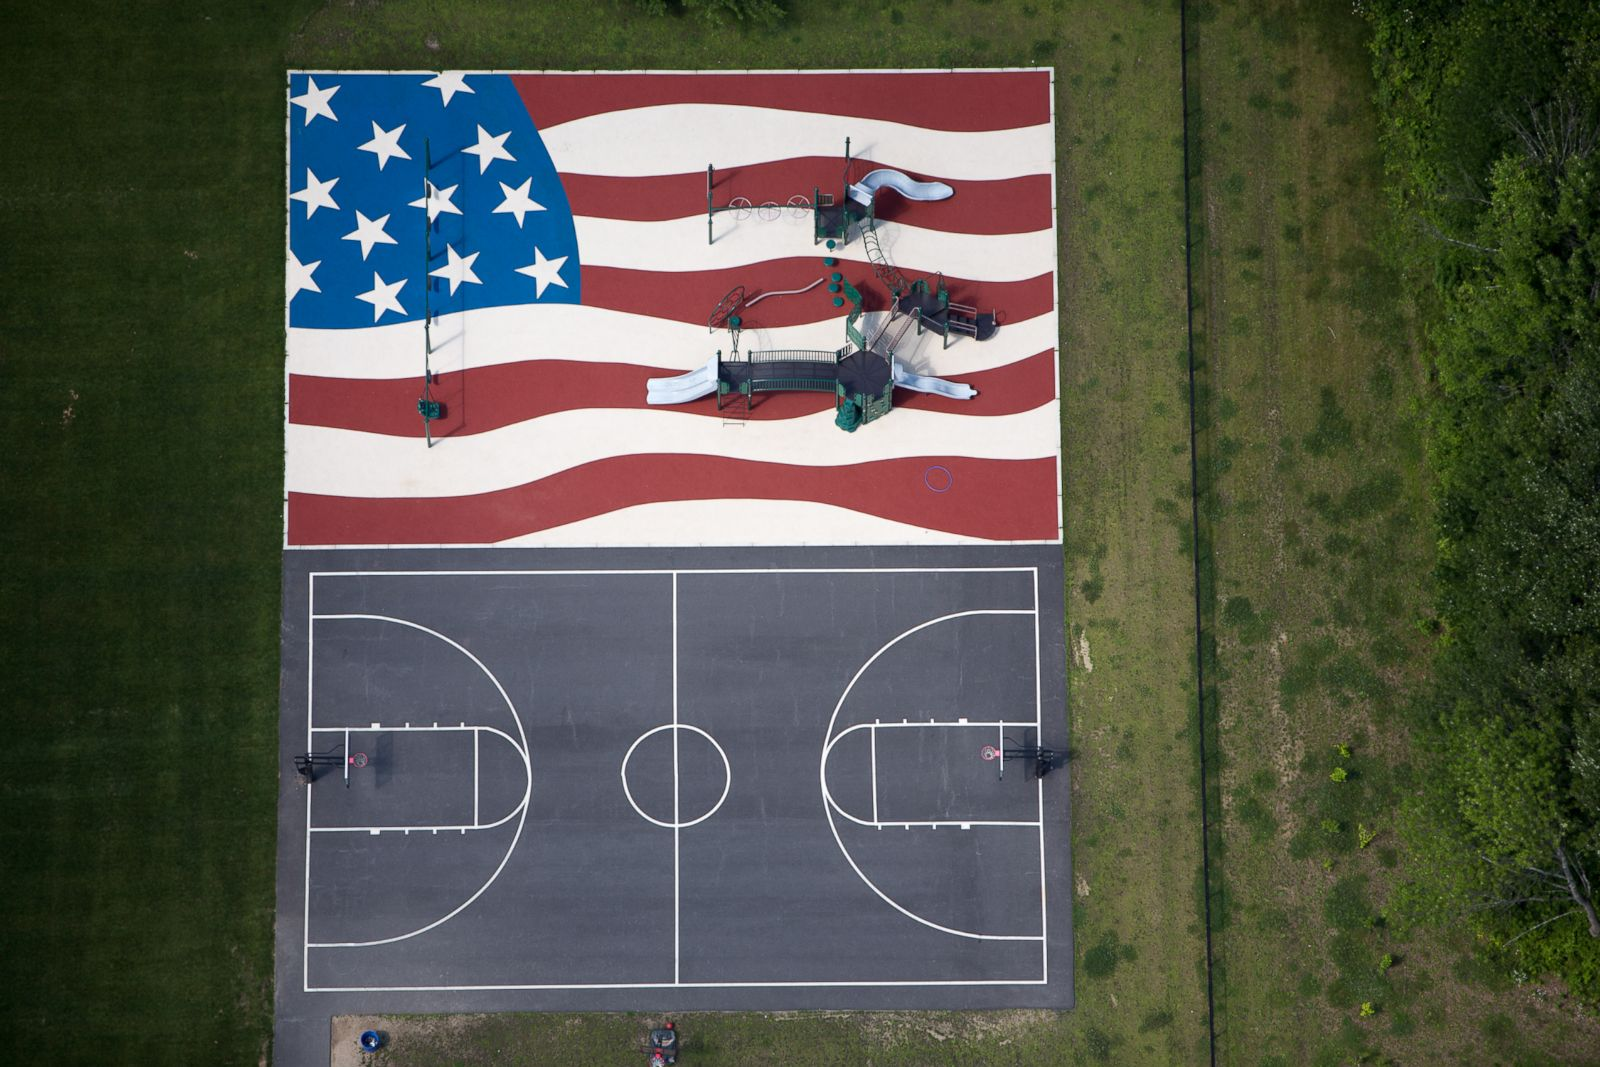 An-American-flag-playground-and-a-basketball-court-in-Stow-Massachussetts